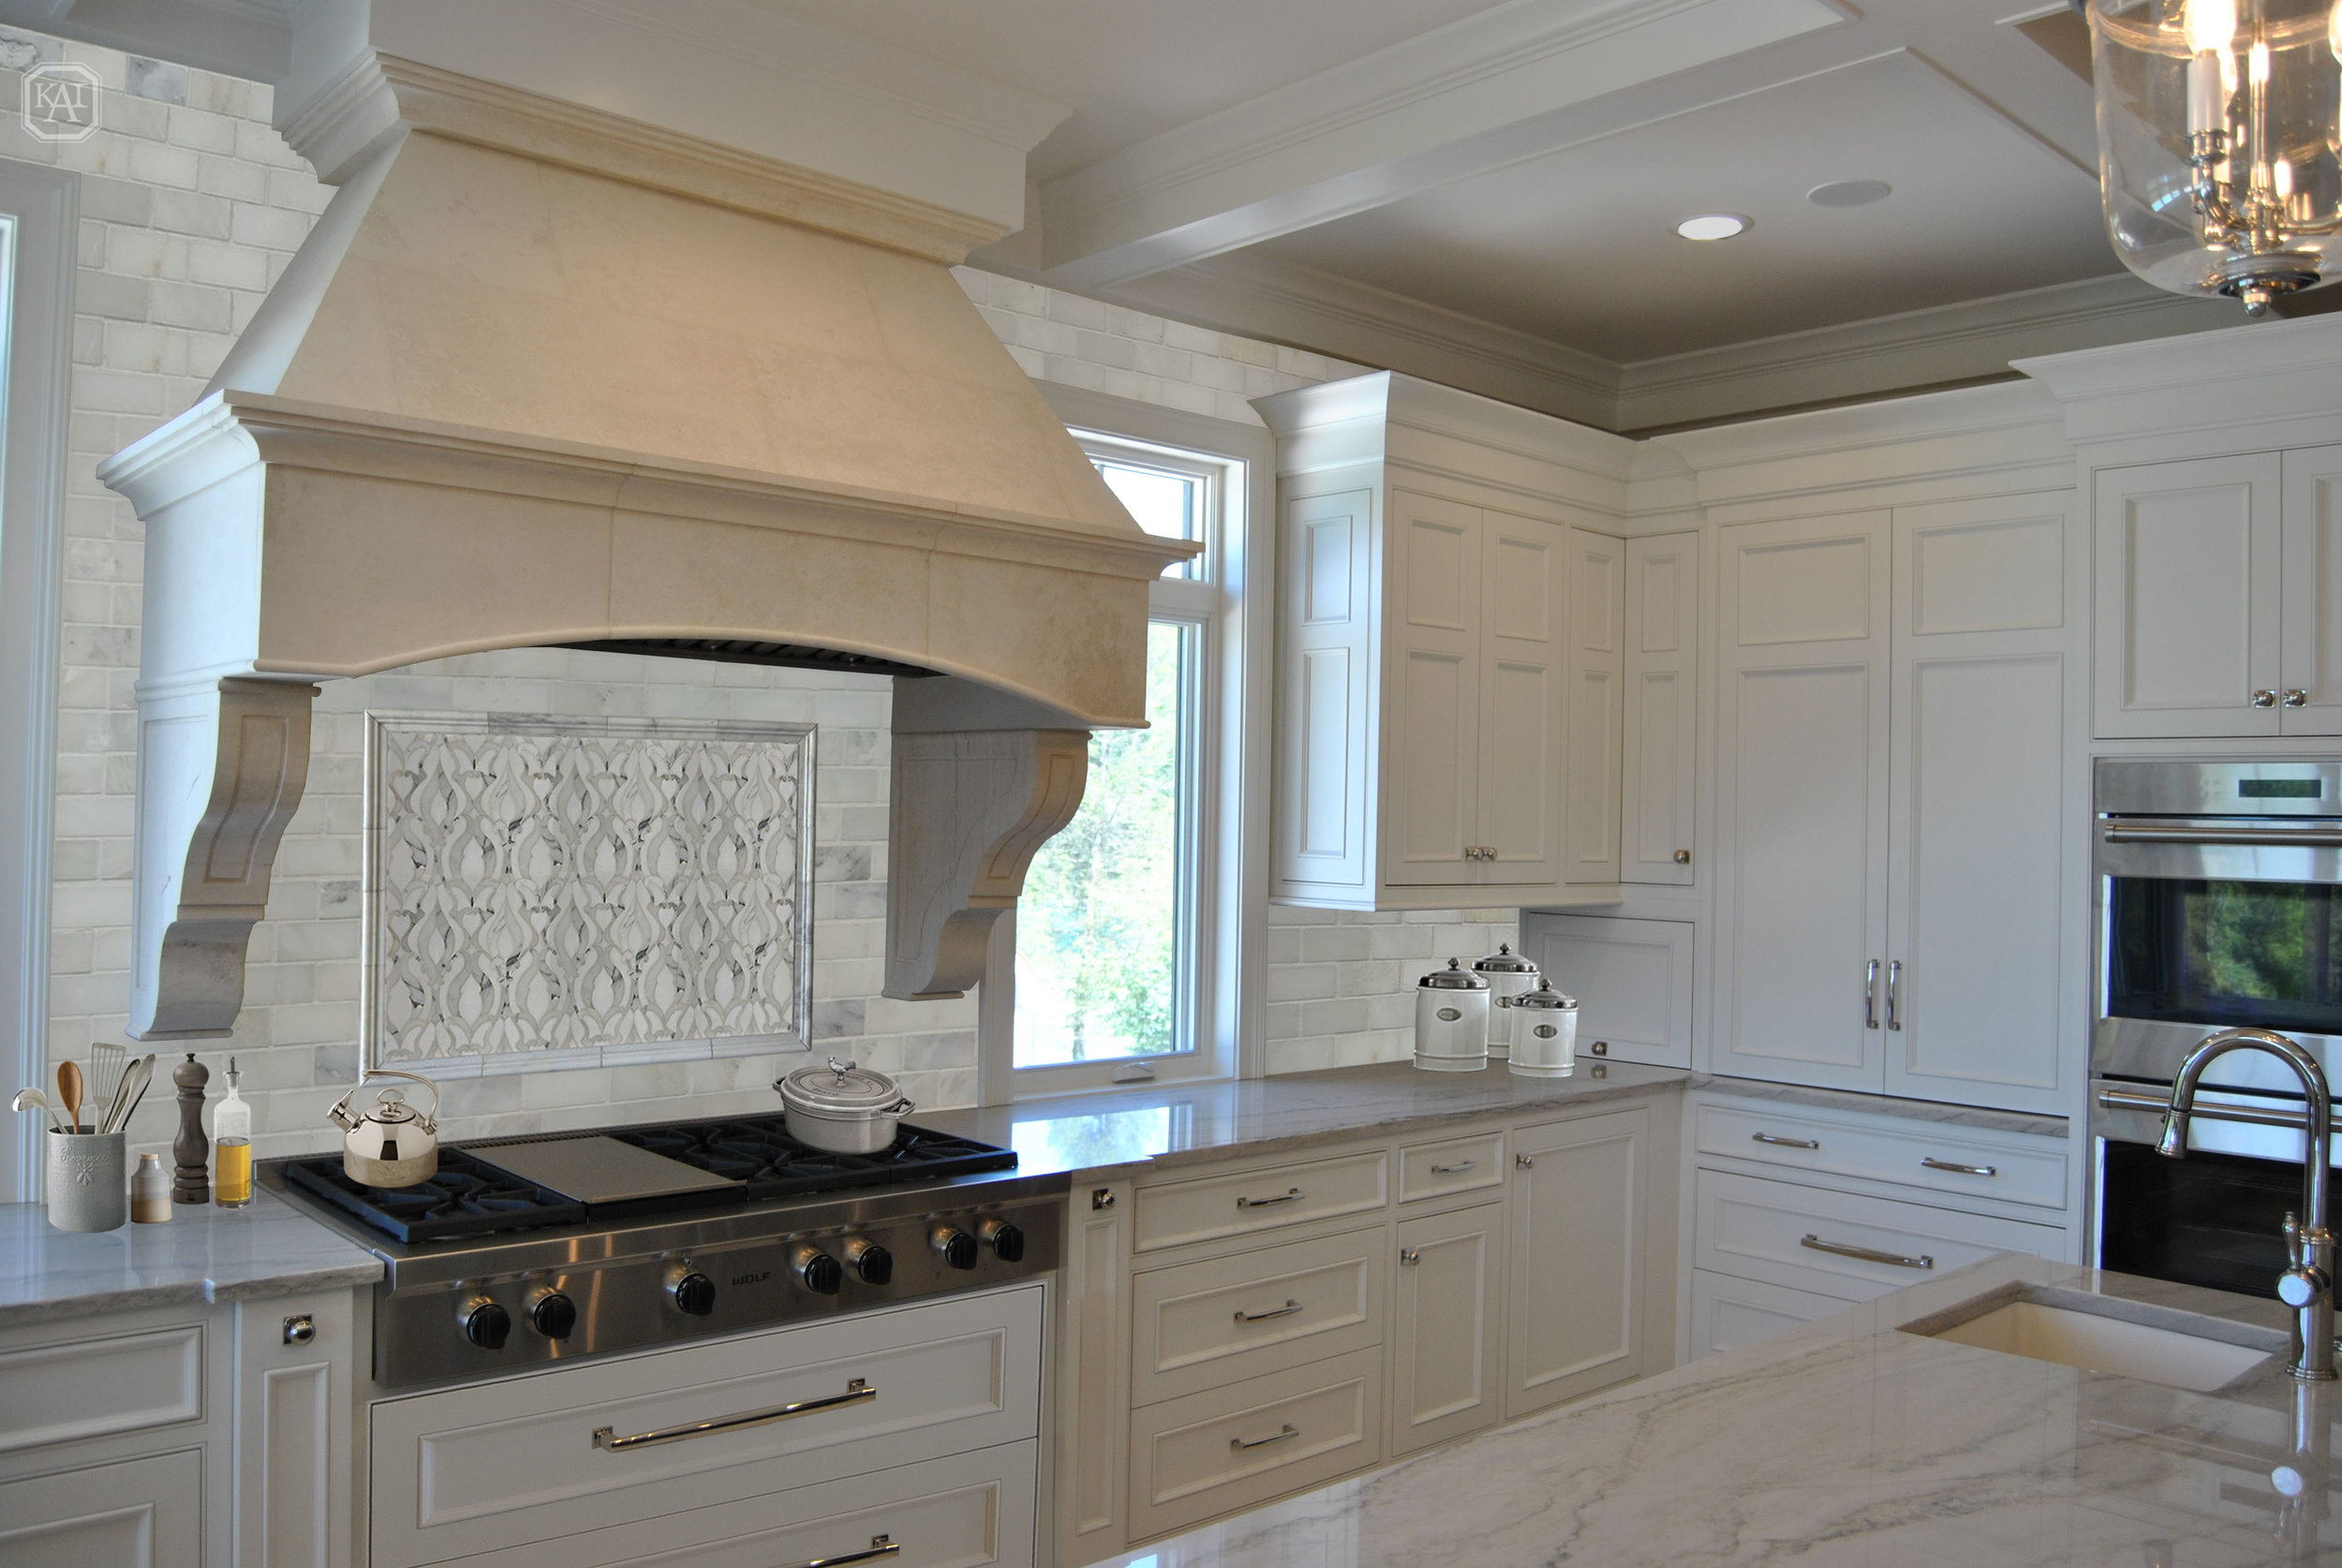 ZITELLA KITCHEN_CORNER VIEW_DSC_0289_EDIT.jpg